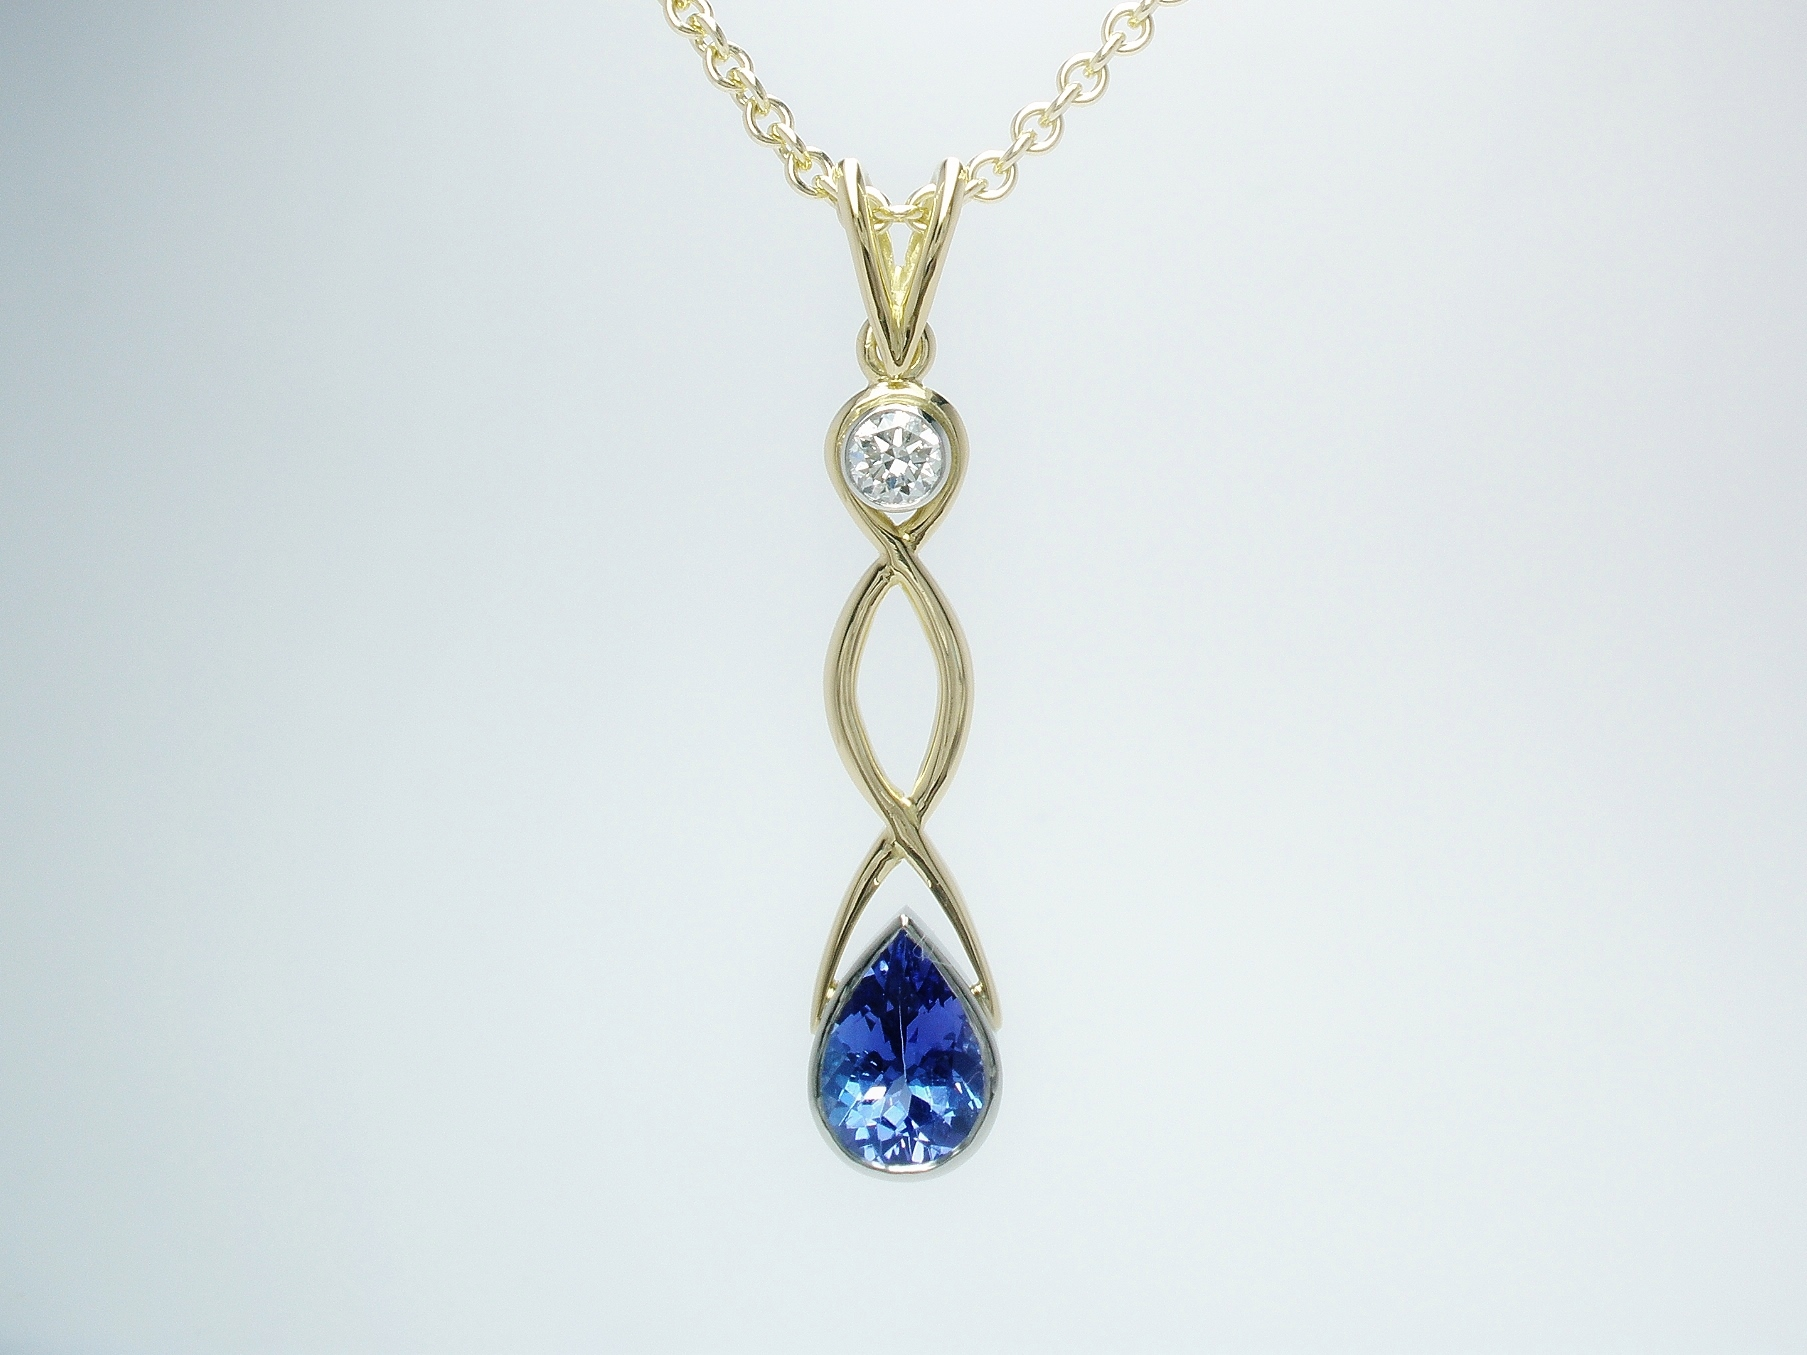 An 18ct. yellow gold hand carved Celtic style drop pendant mounted with a pear shaped tanzanite round brilliant cut diamond rub-over set in platinum.